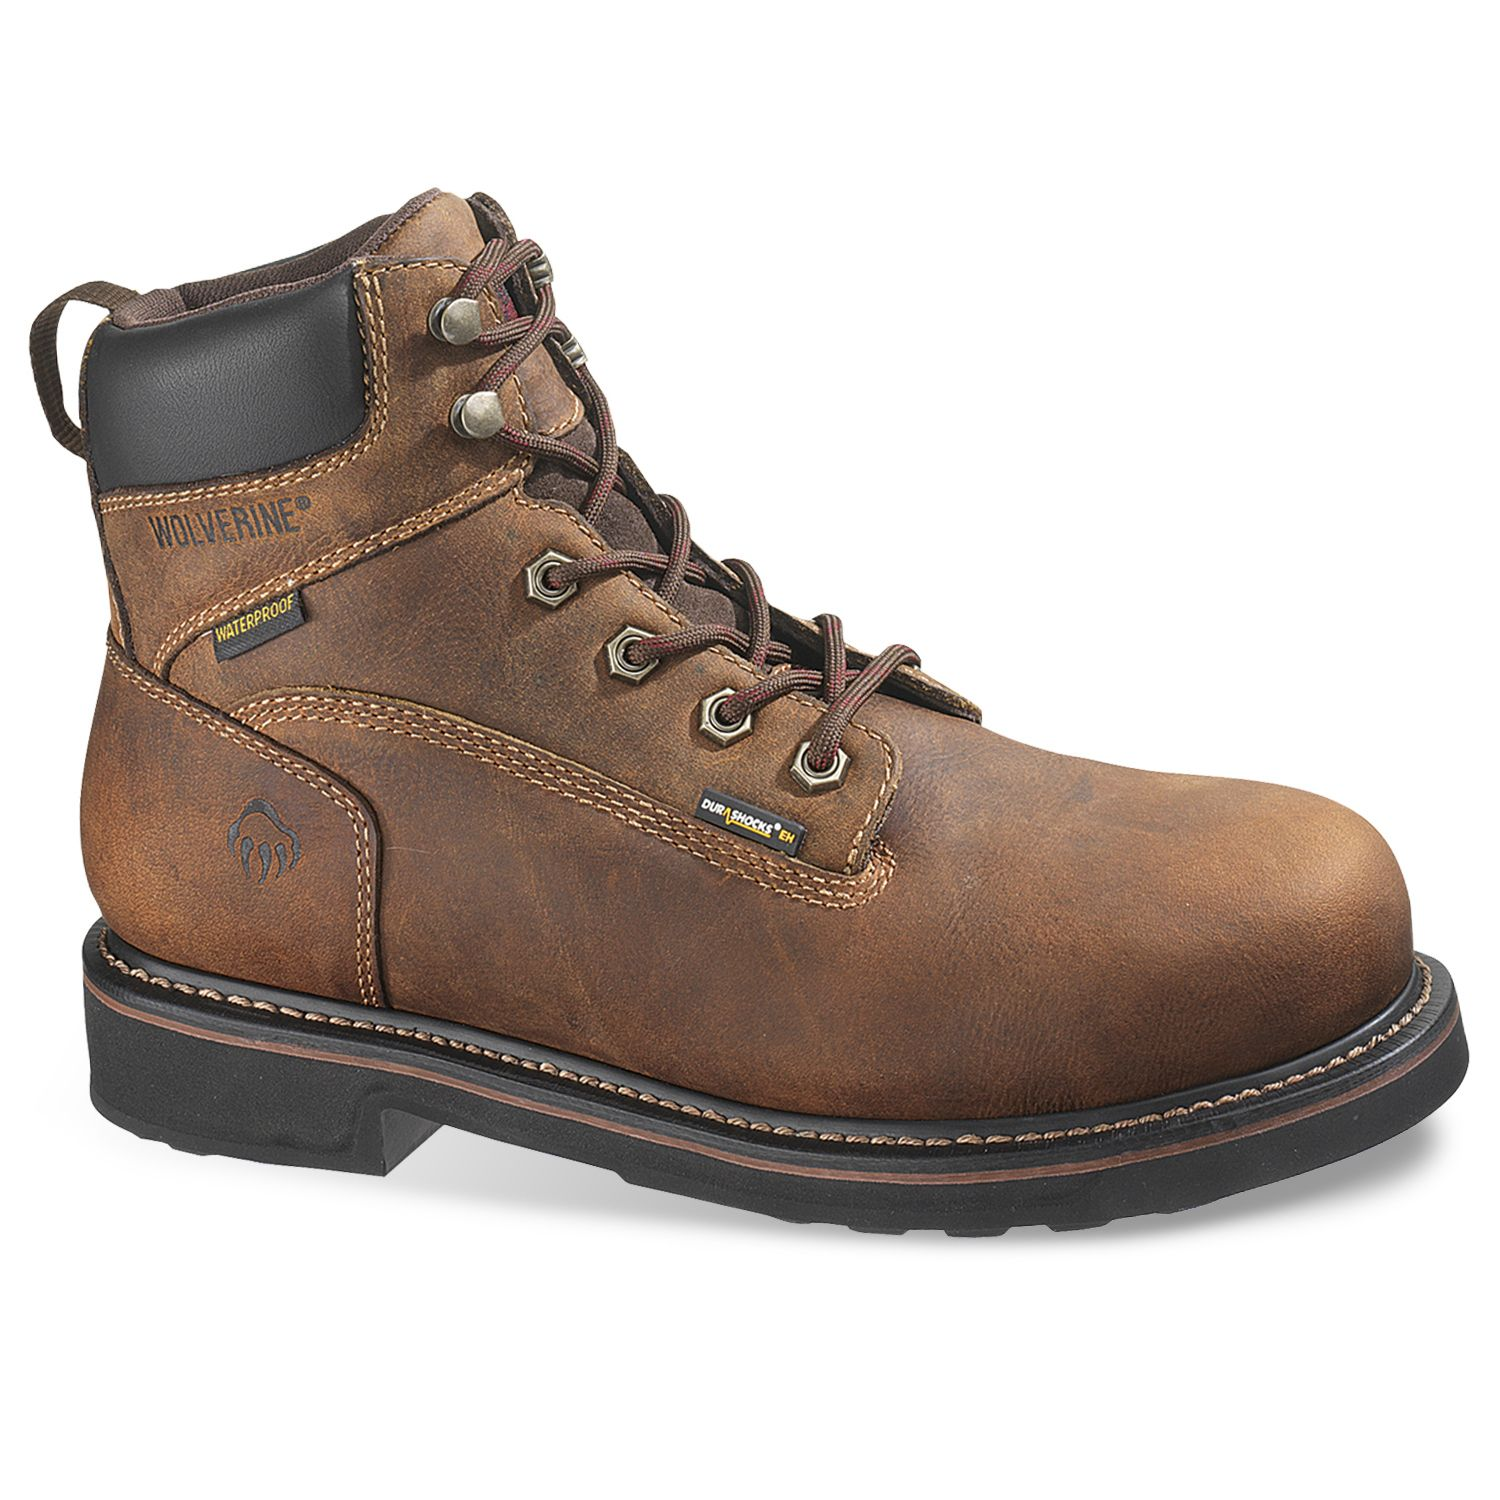 852f4ce6581 Mens Work Boots | Kohl's